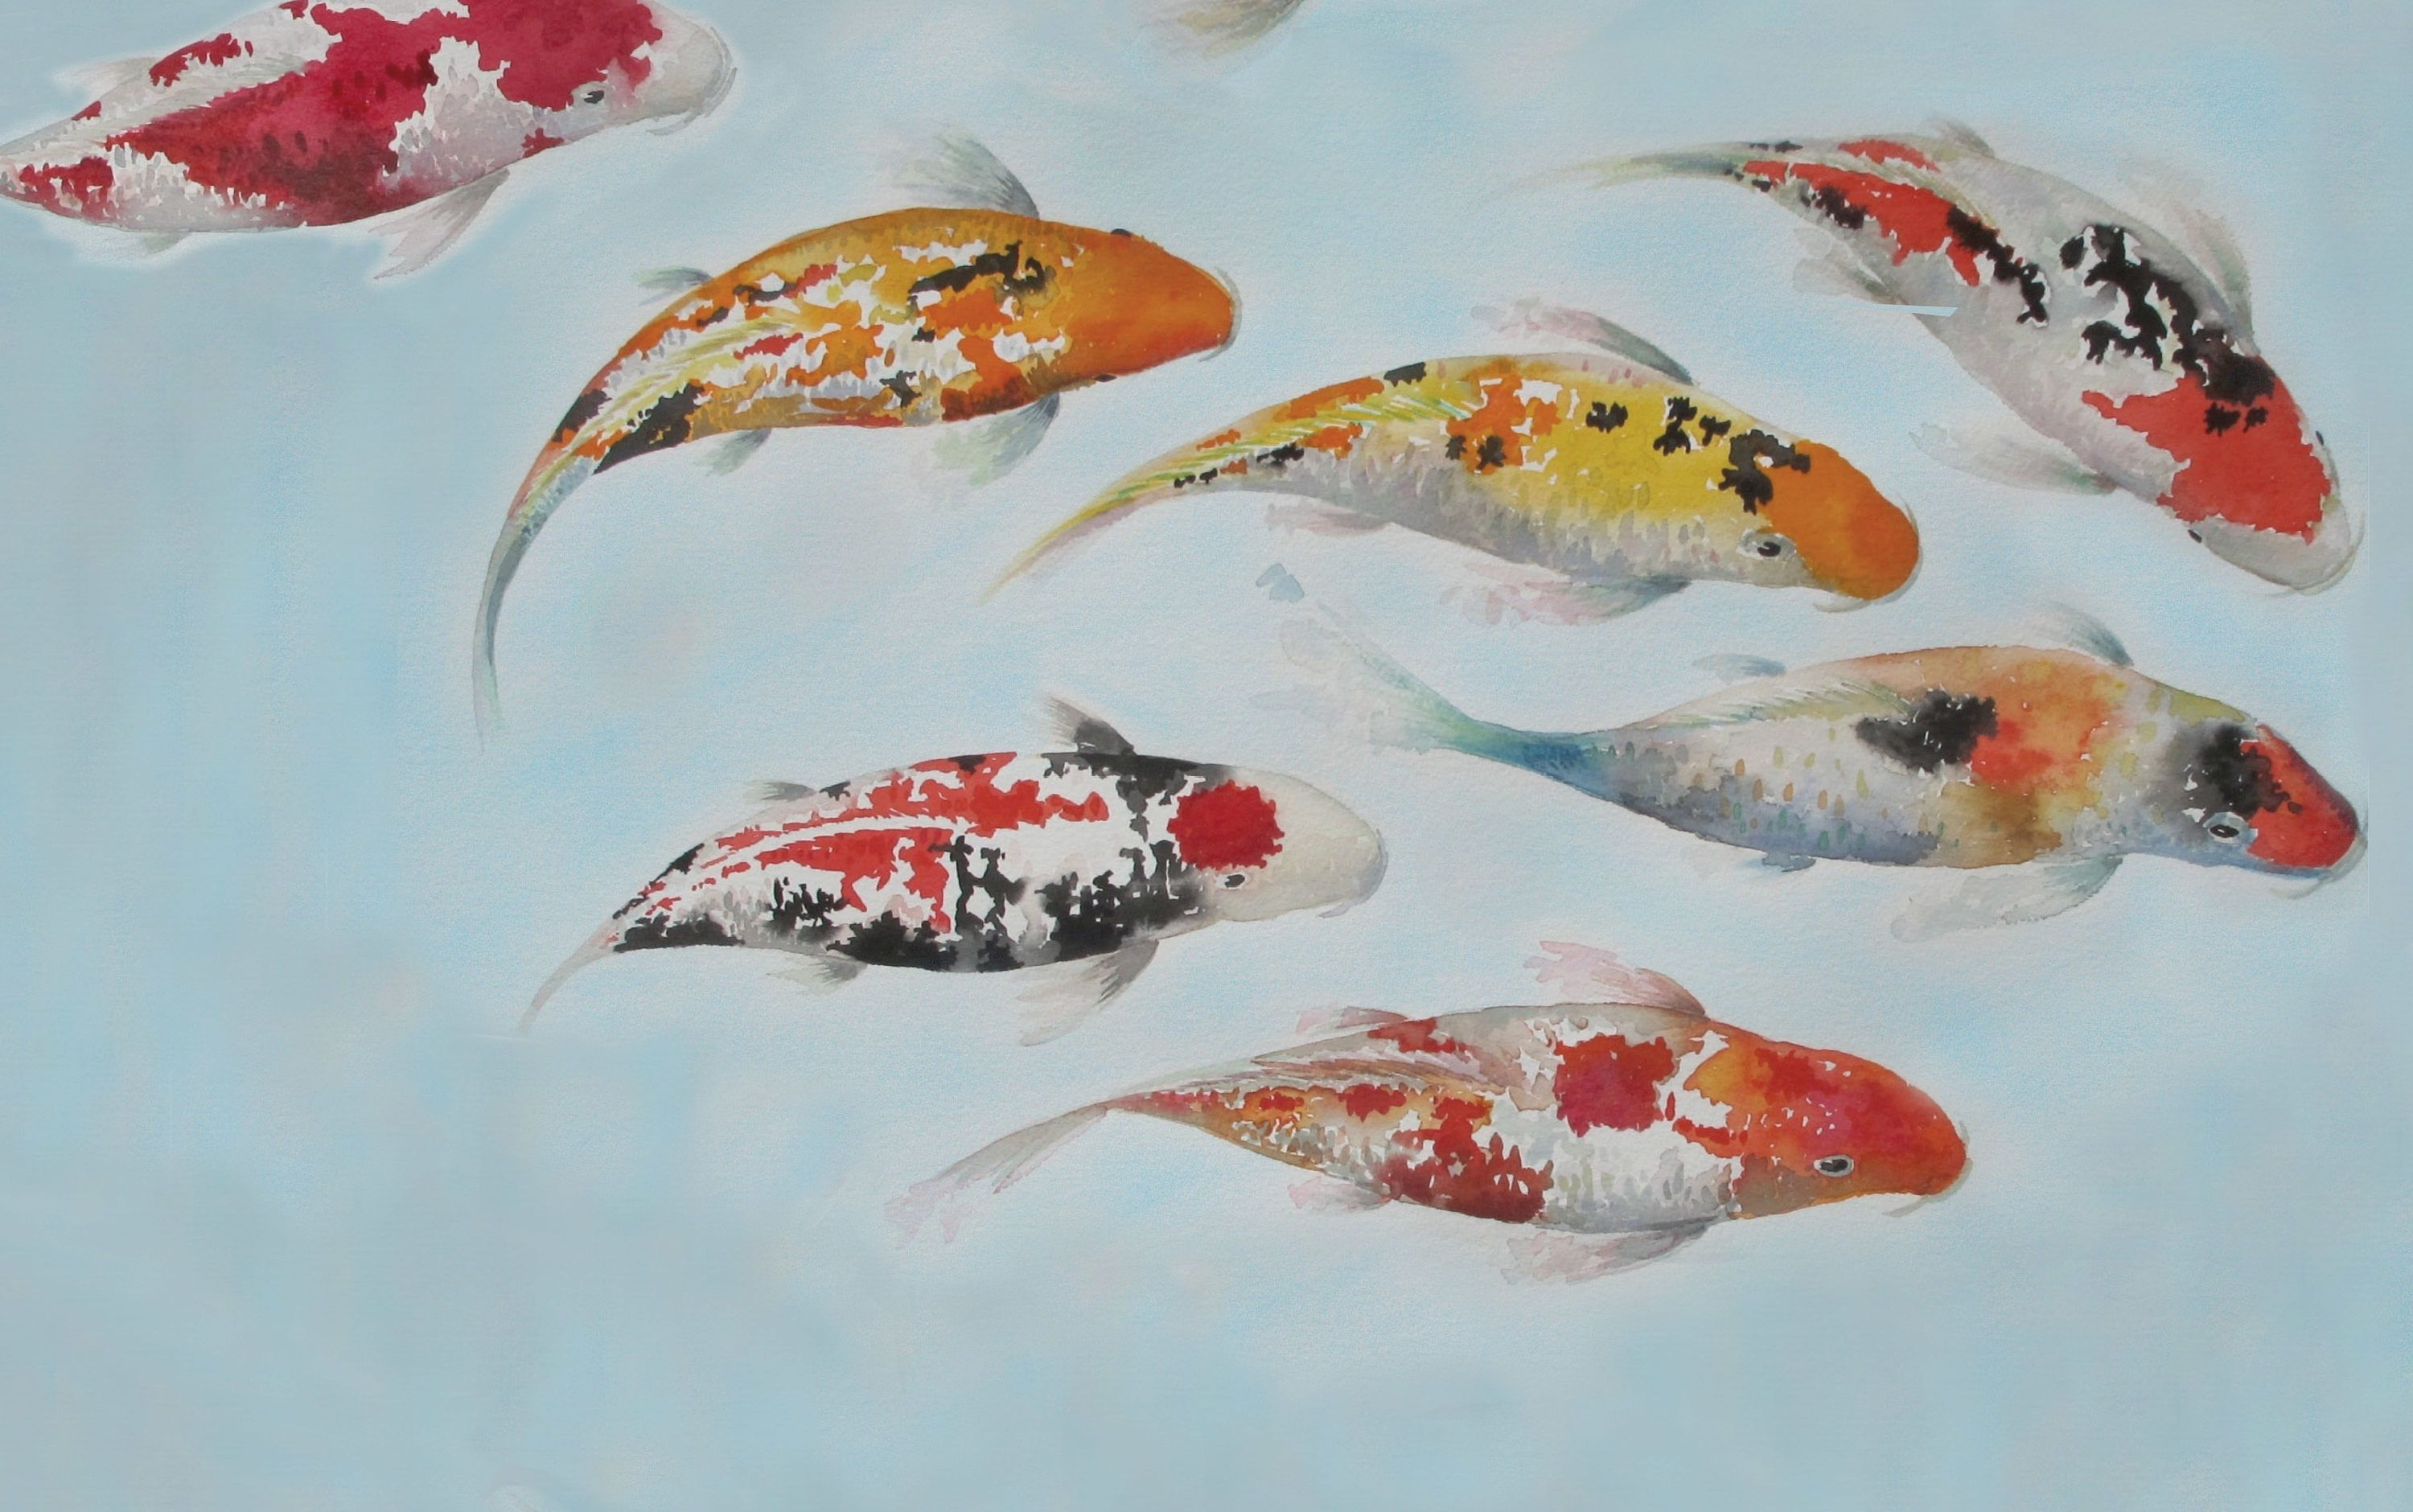 3000x1880 Koi Wallpaper - Japanese Carps Wallpaper - Watercolor Japanese ...